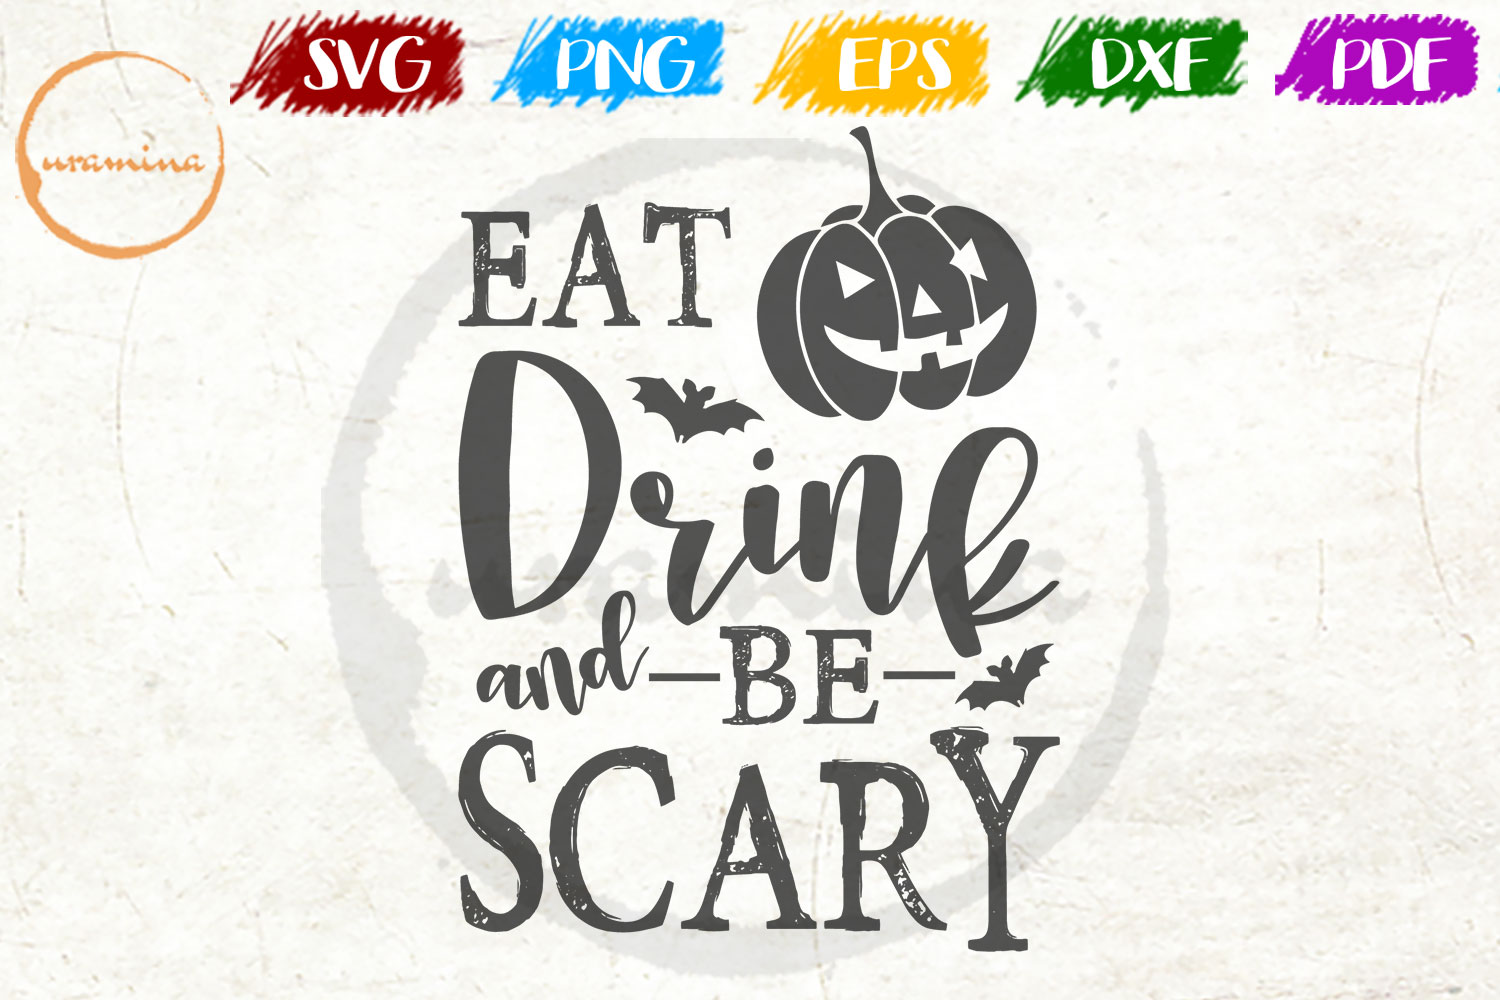 Download Free Eat Drink And Be Scary Graphic By Uramina Creative Fabrica for Cricut Explore, Silhouette and other cutting machines.